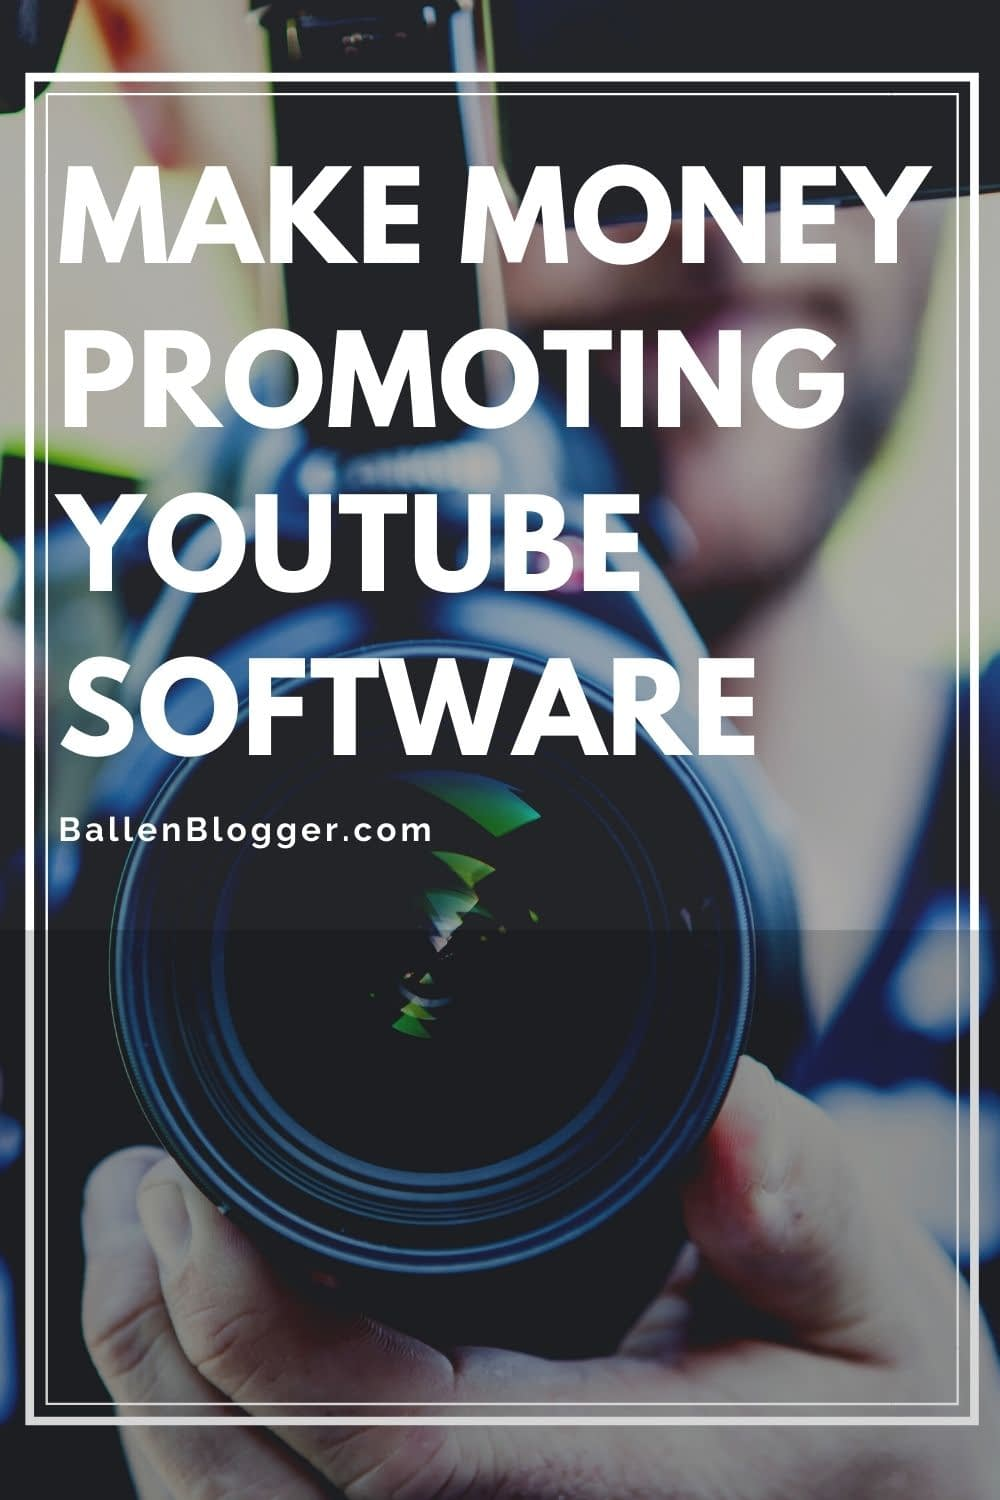 Tubebuddy has an affiliate program. It offers a scaling commission based on a number of sign-ups with up to 50% commission recurring.